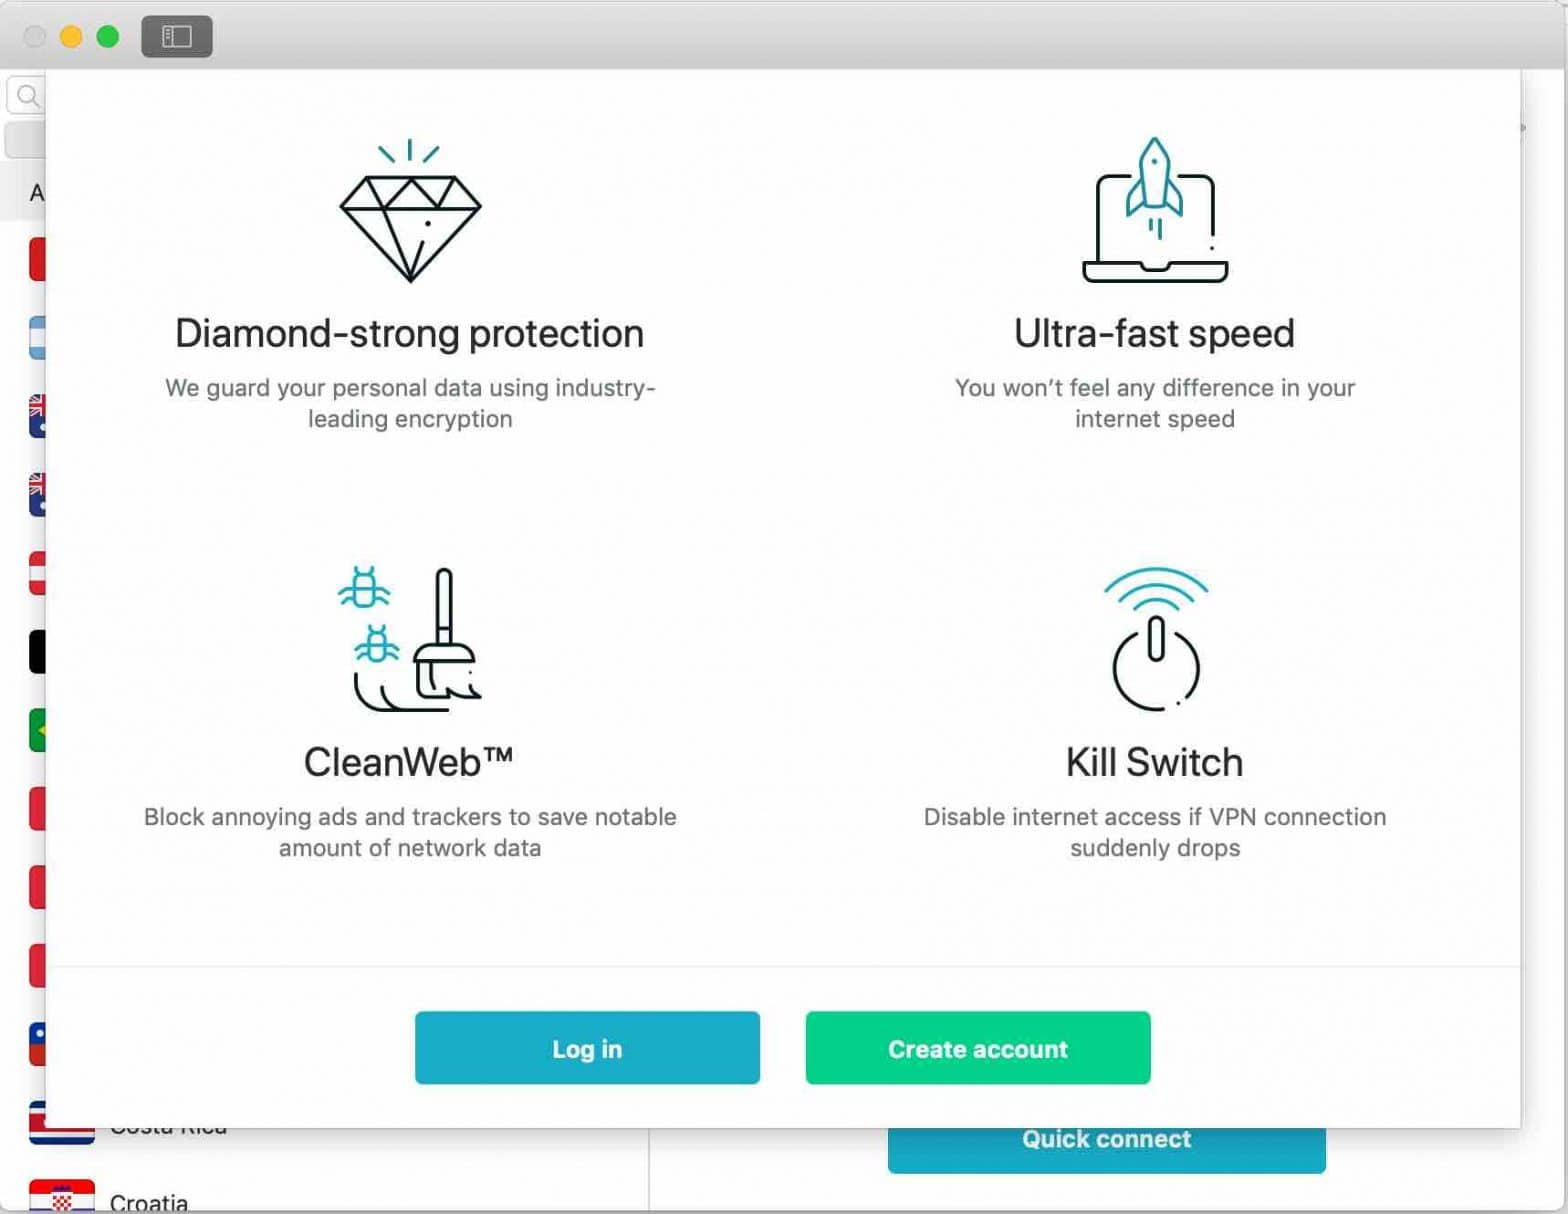 How to connect to Surfshark VPN